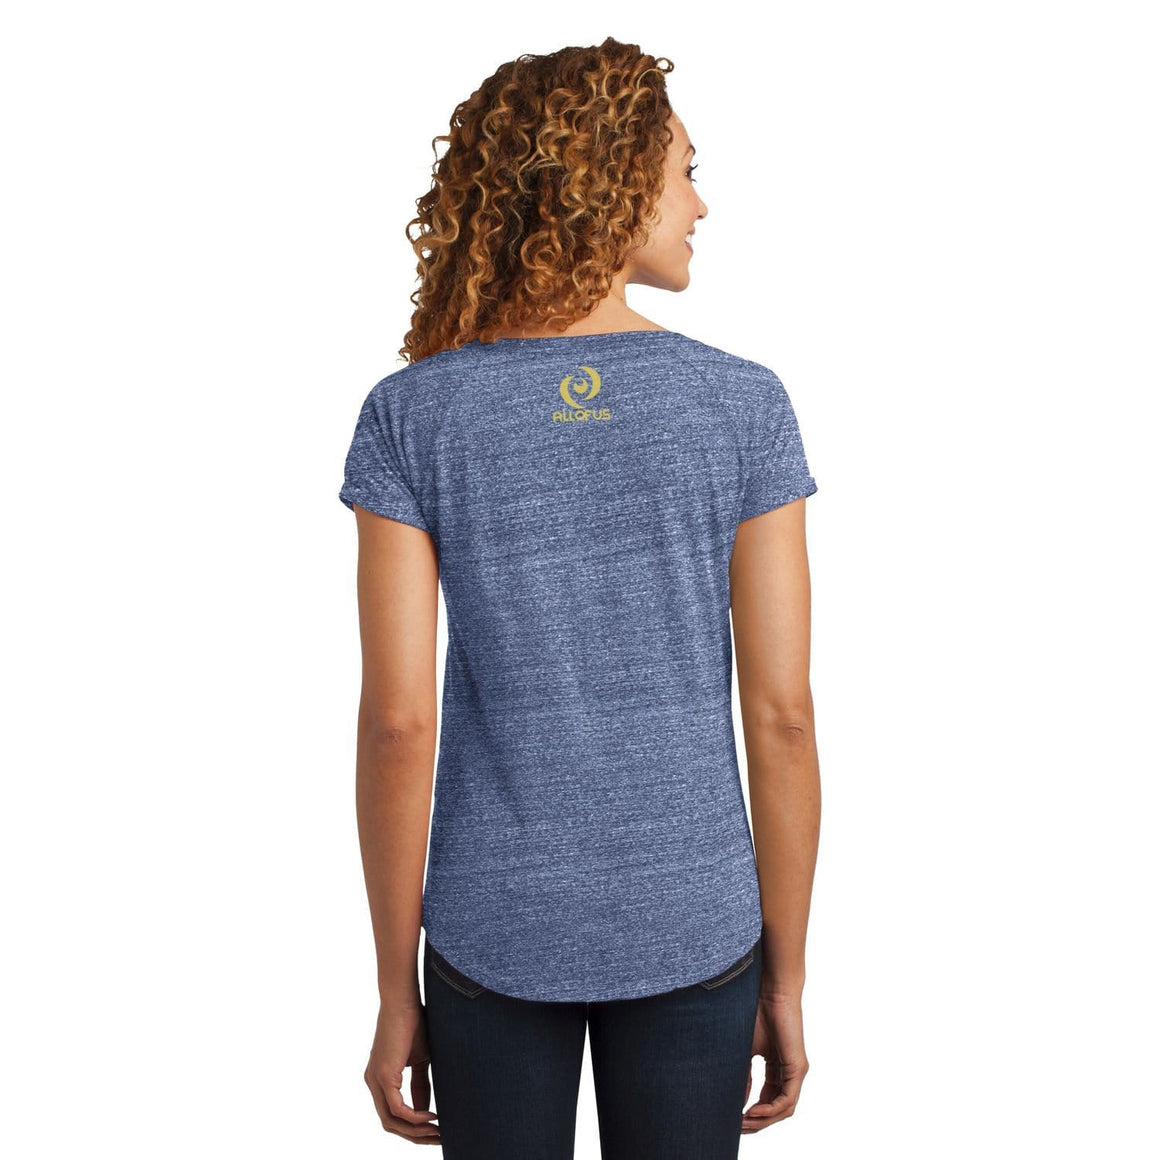 Womens Human.Kind. Navy Heather Tri-Blend Scoop Tee T-shirt